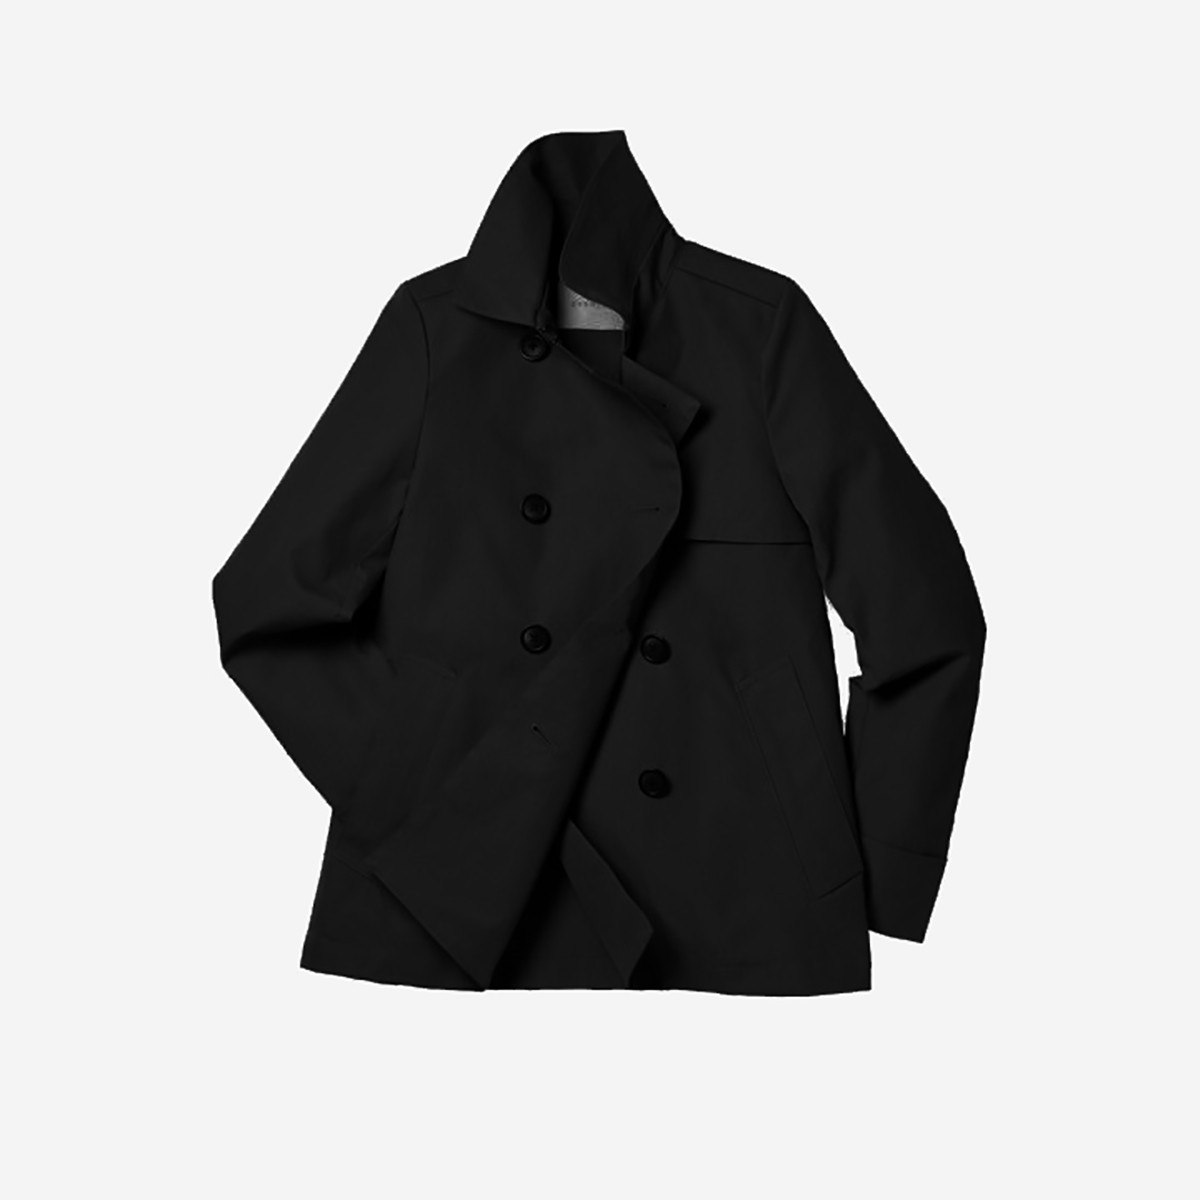 Product Image 1 - Everlane Swing Trench Size Small, in